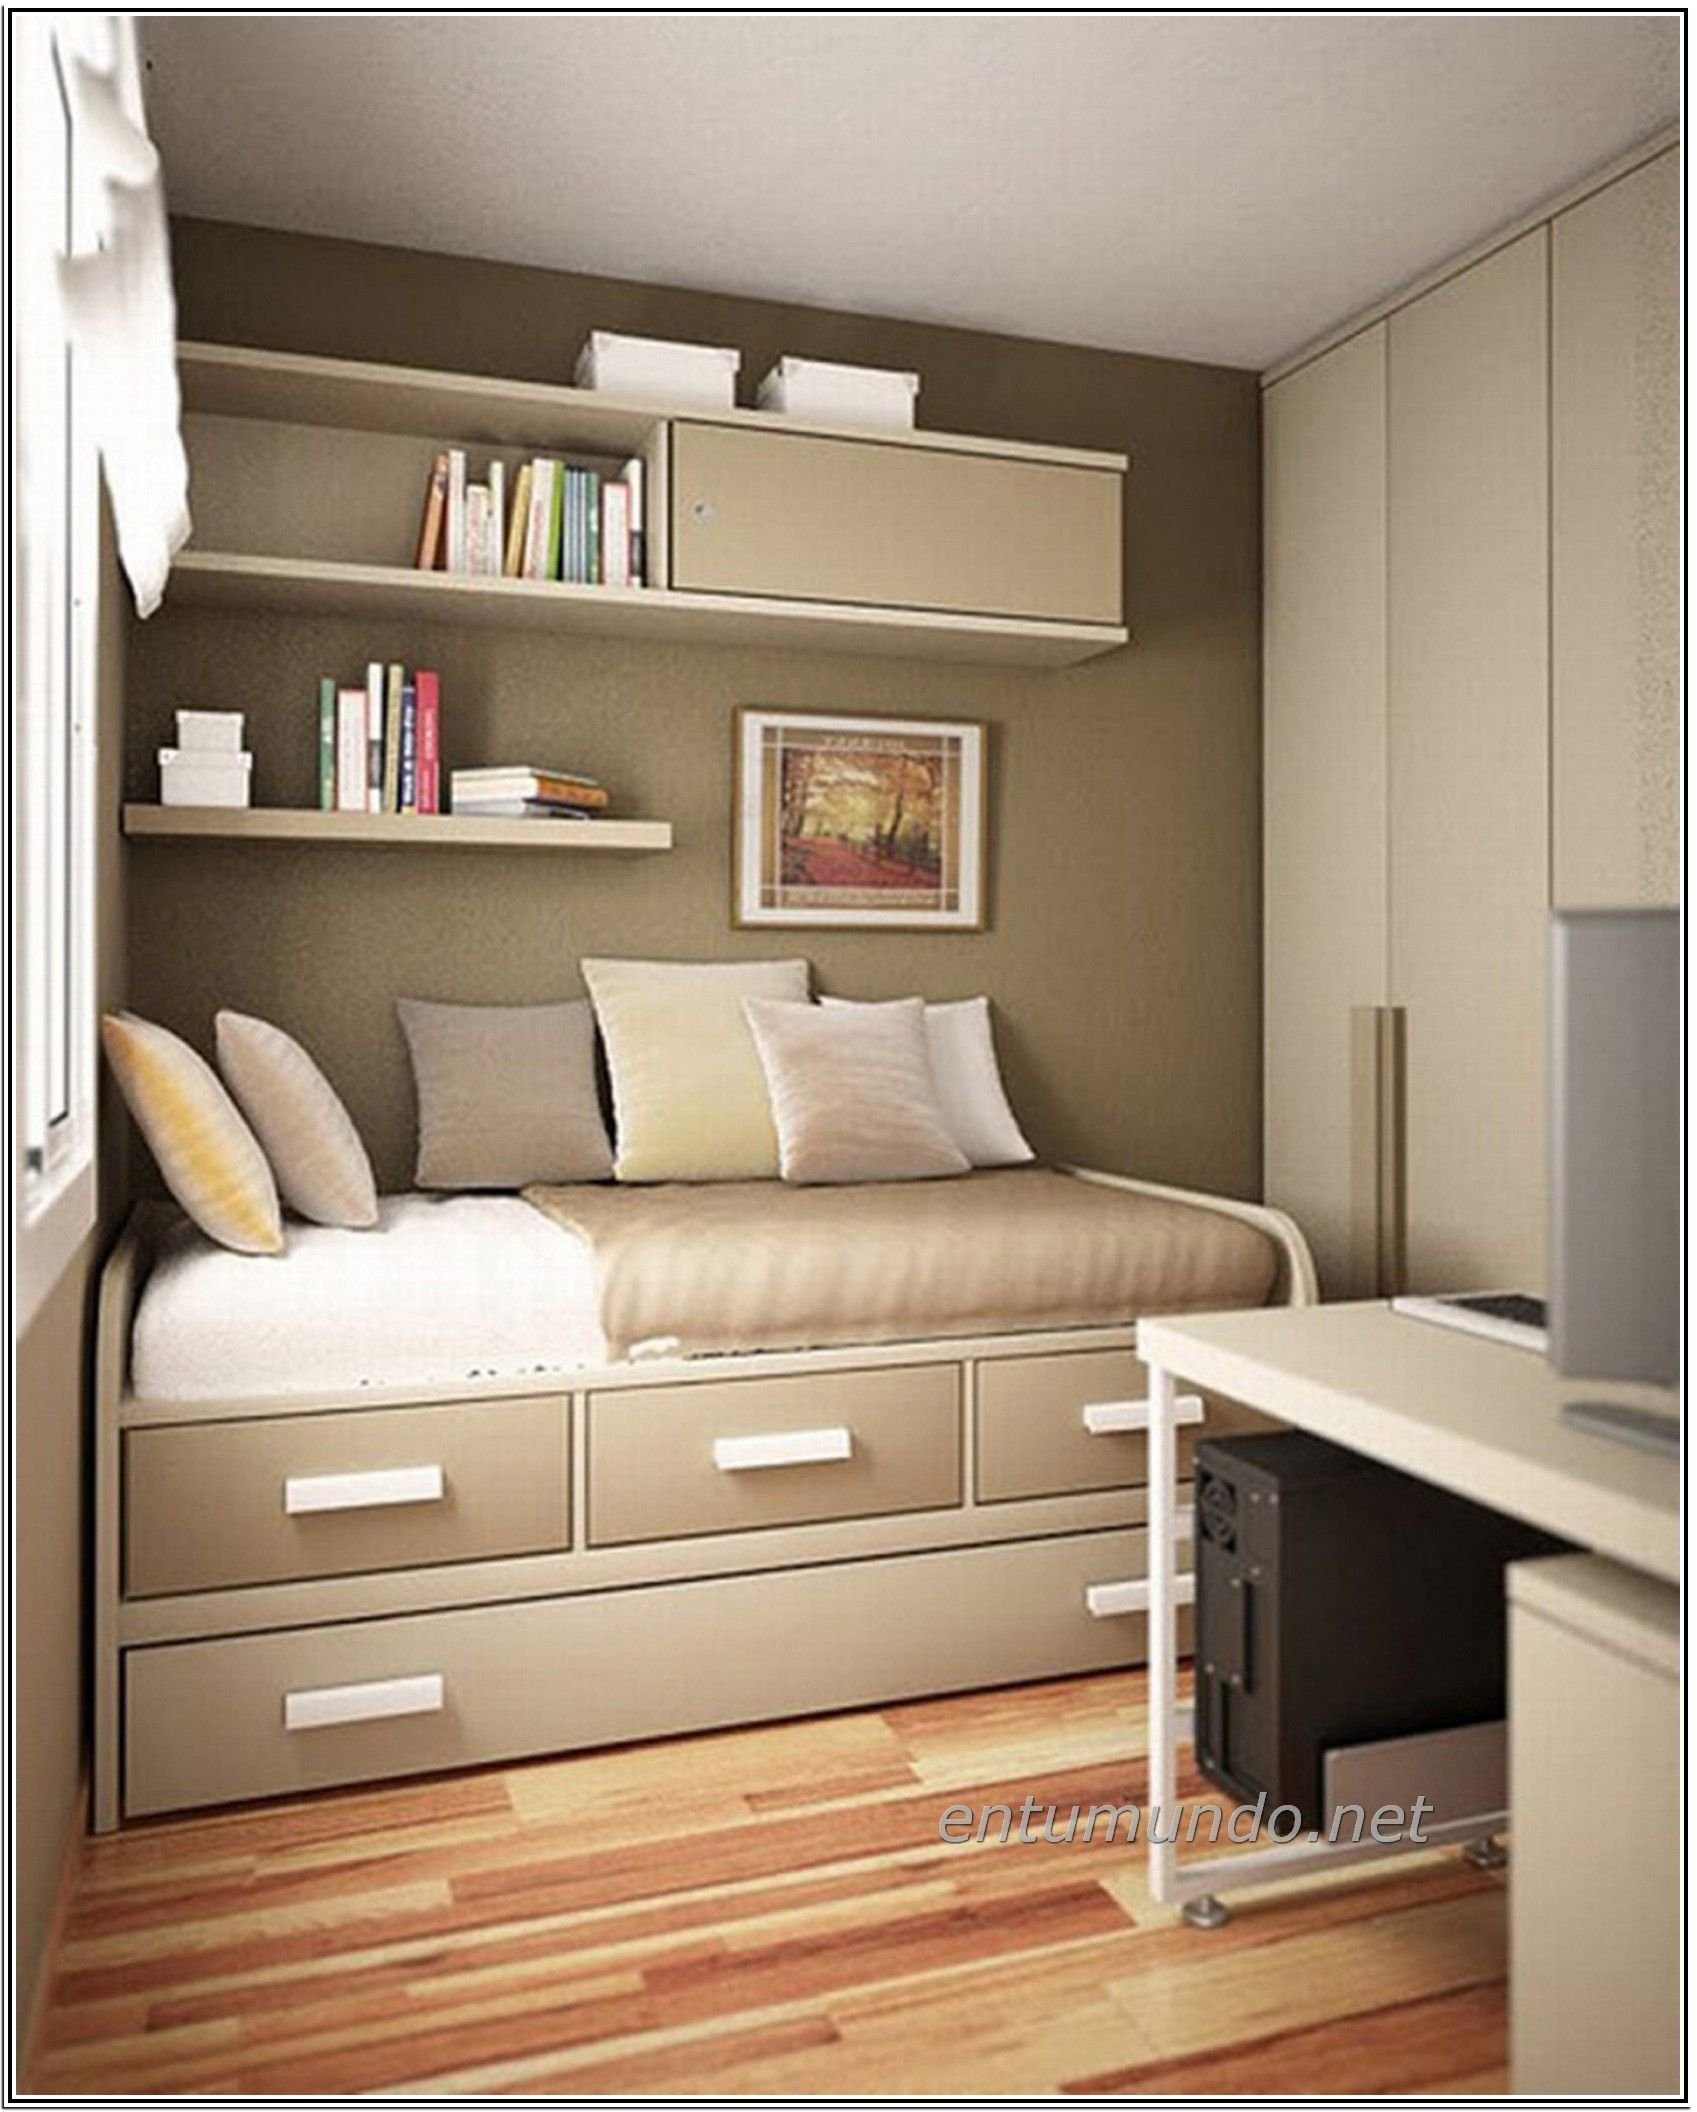 Elite Stunning Small Bedroom Storage Ideas Copy This Us Creative Of Clever in Small Bedroom Hacks